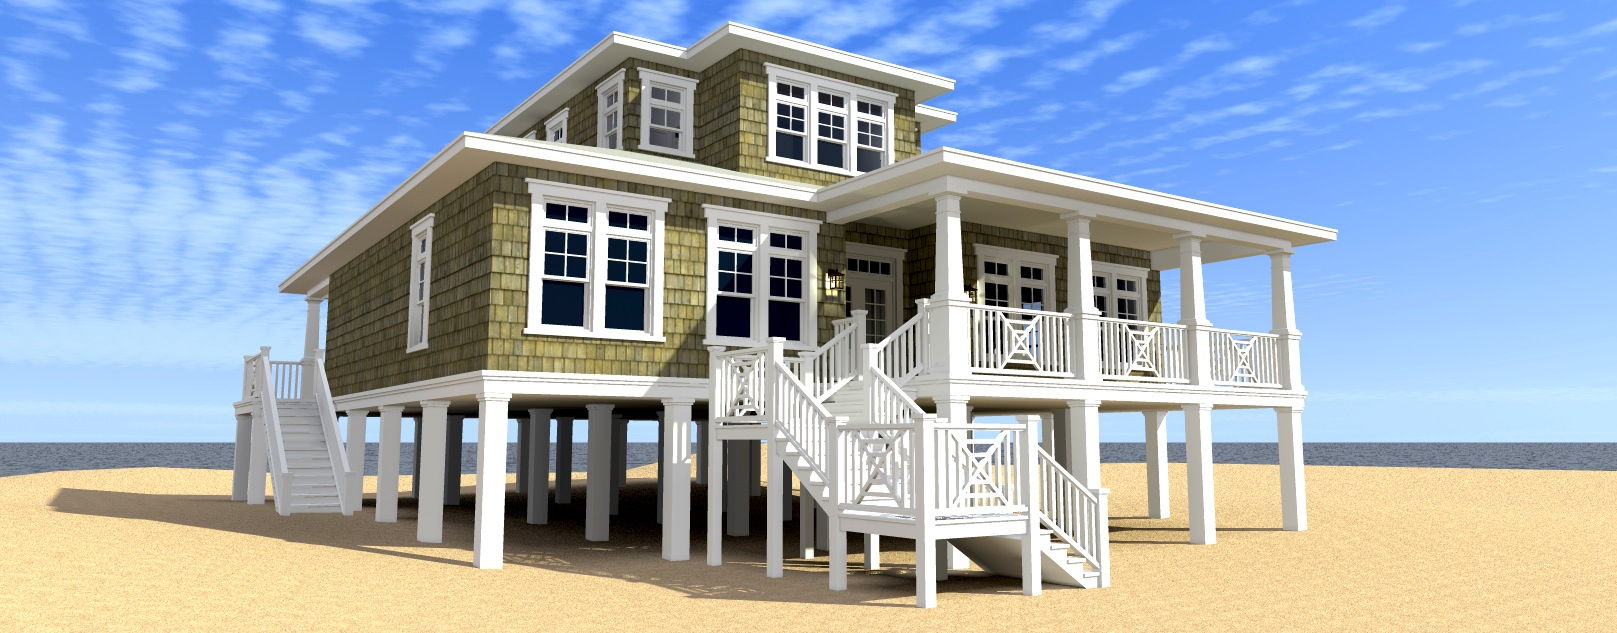 Scuppers house plan tyree house plans for Best beach house plans